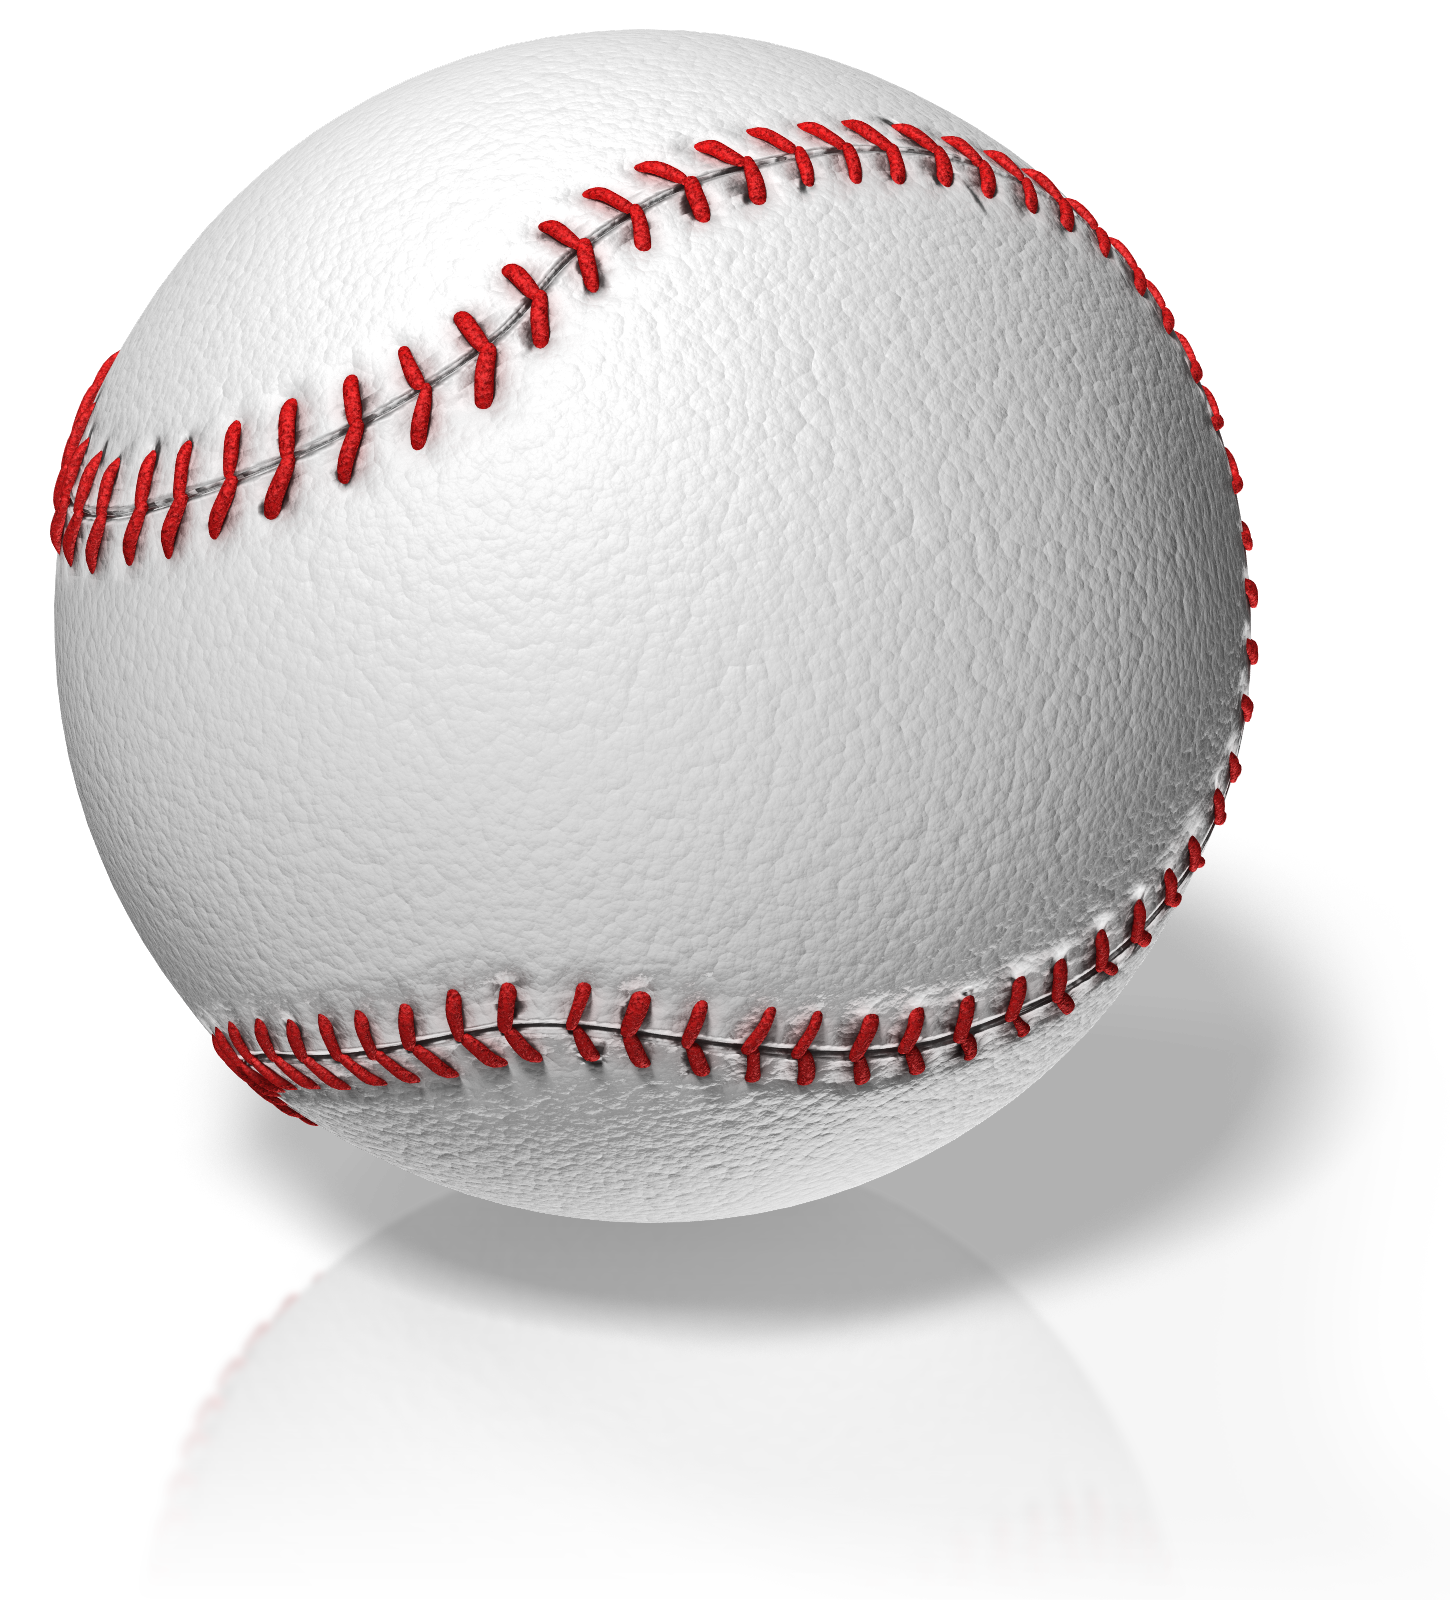 Baseball wallpaper clipart vector black and white download Baseball image transparent clipart #35355 - Free Icons and PNG ... vector black and white download